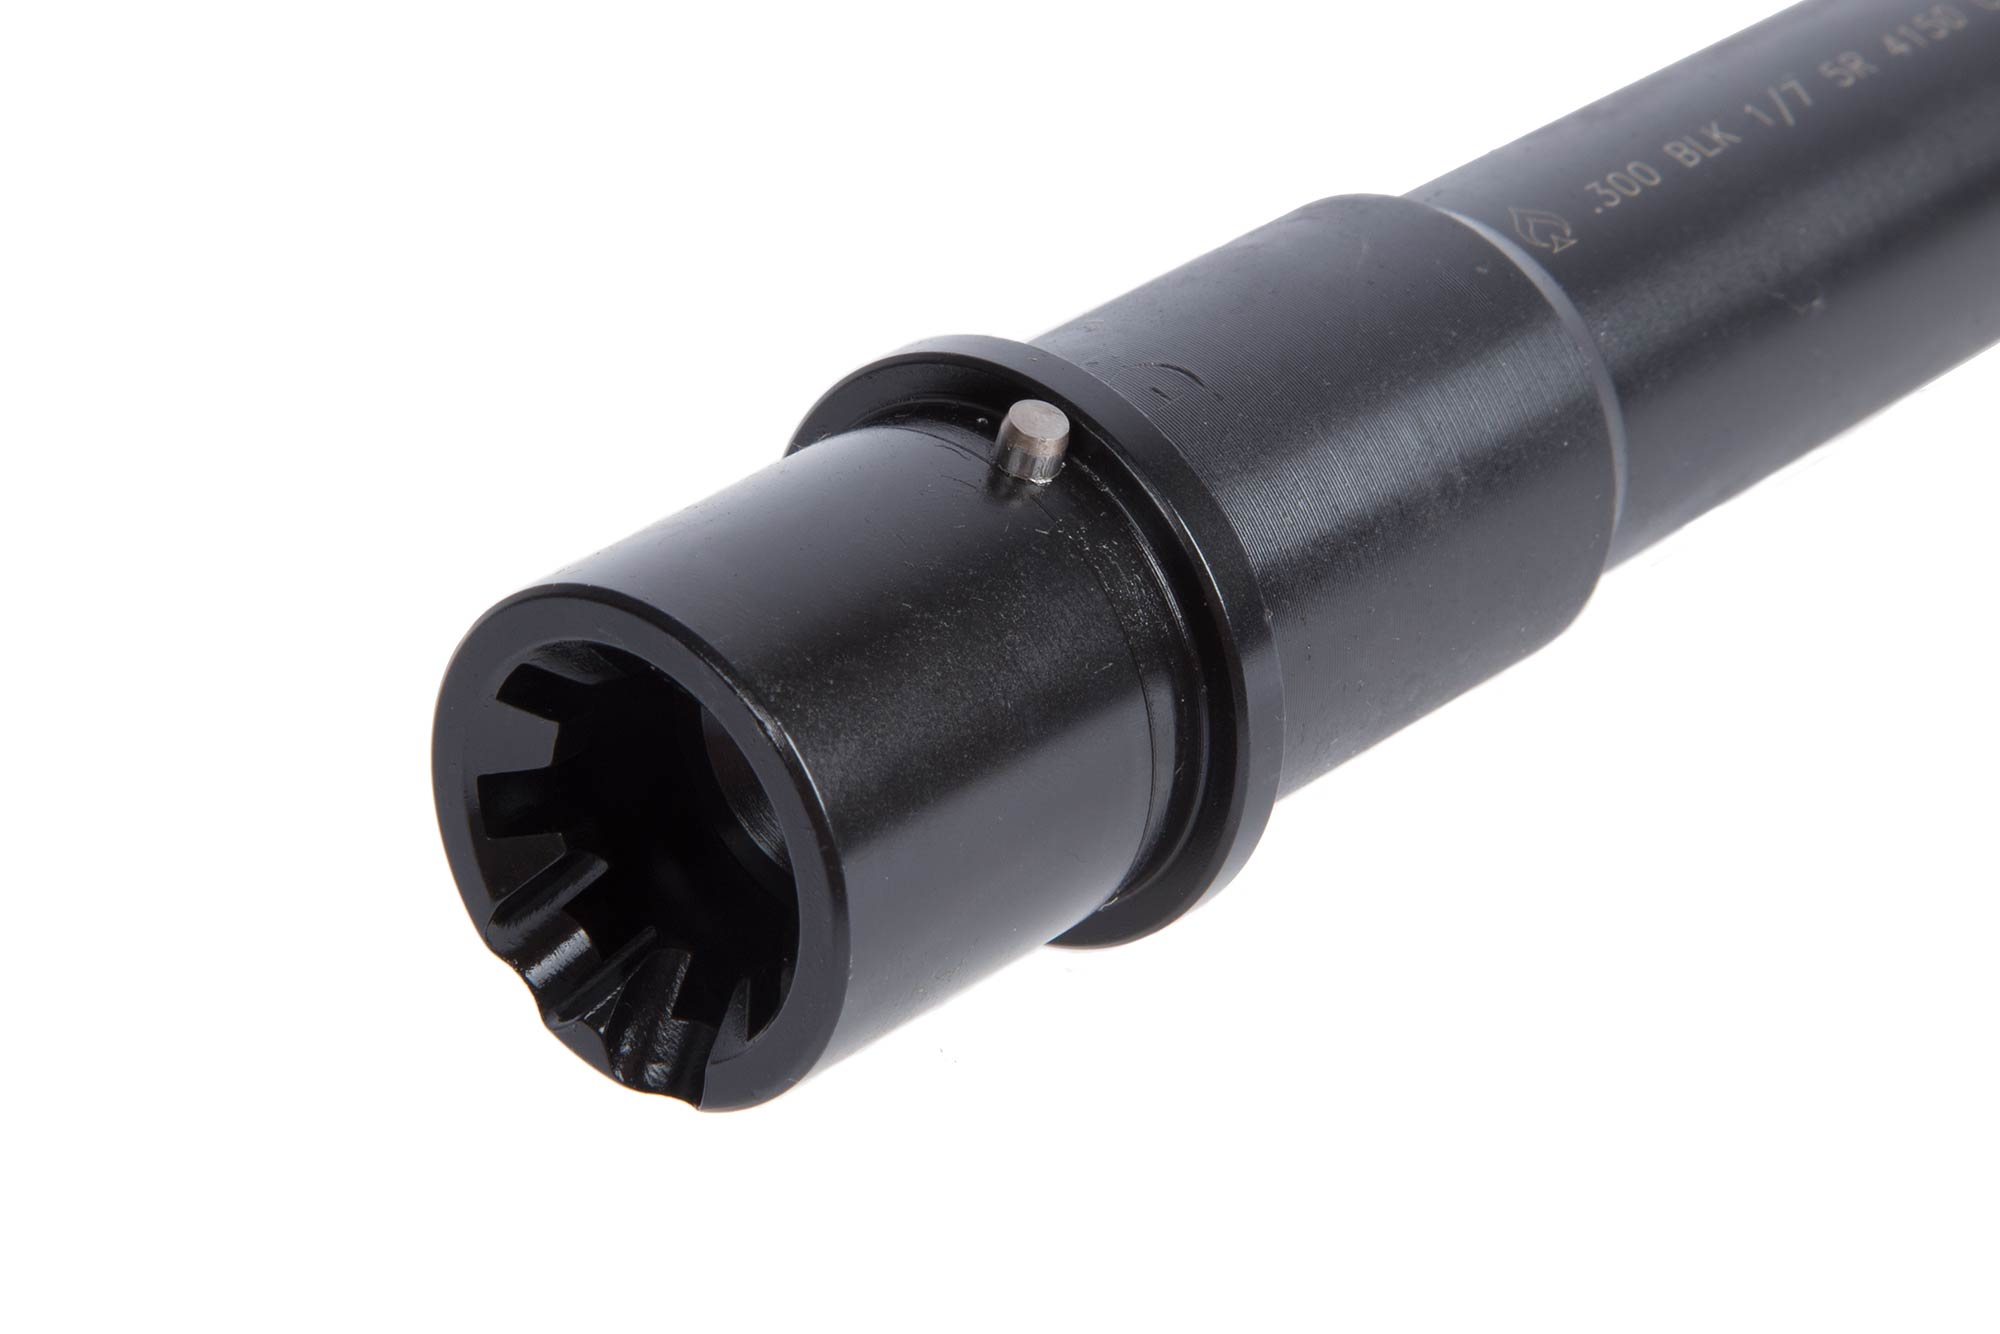 The Ballistic Advantage 300 BLK pistol barrel for ar-15 receivers features a barrel extension with feed ramps